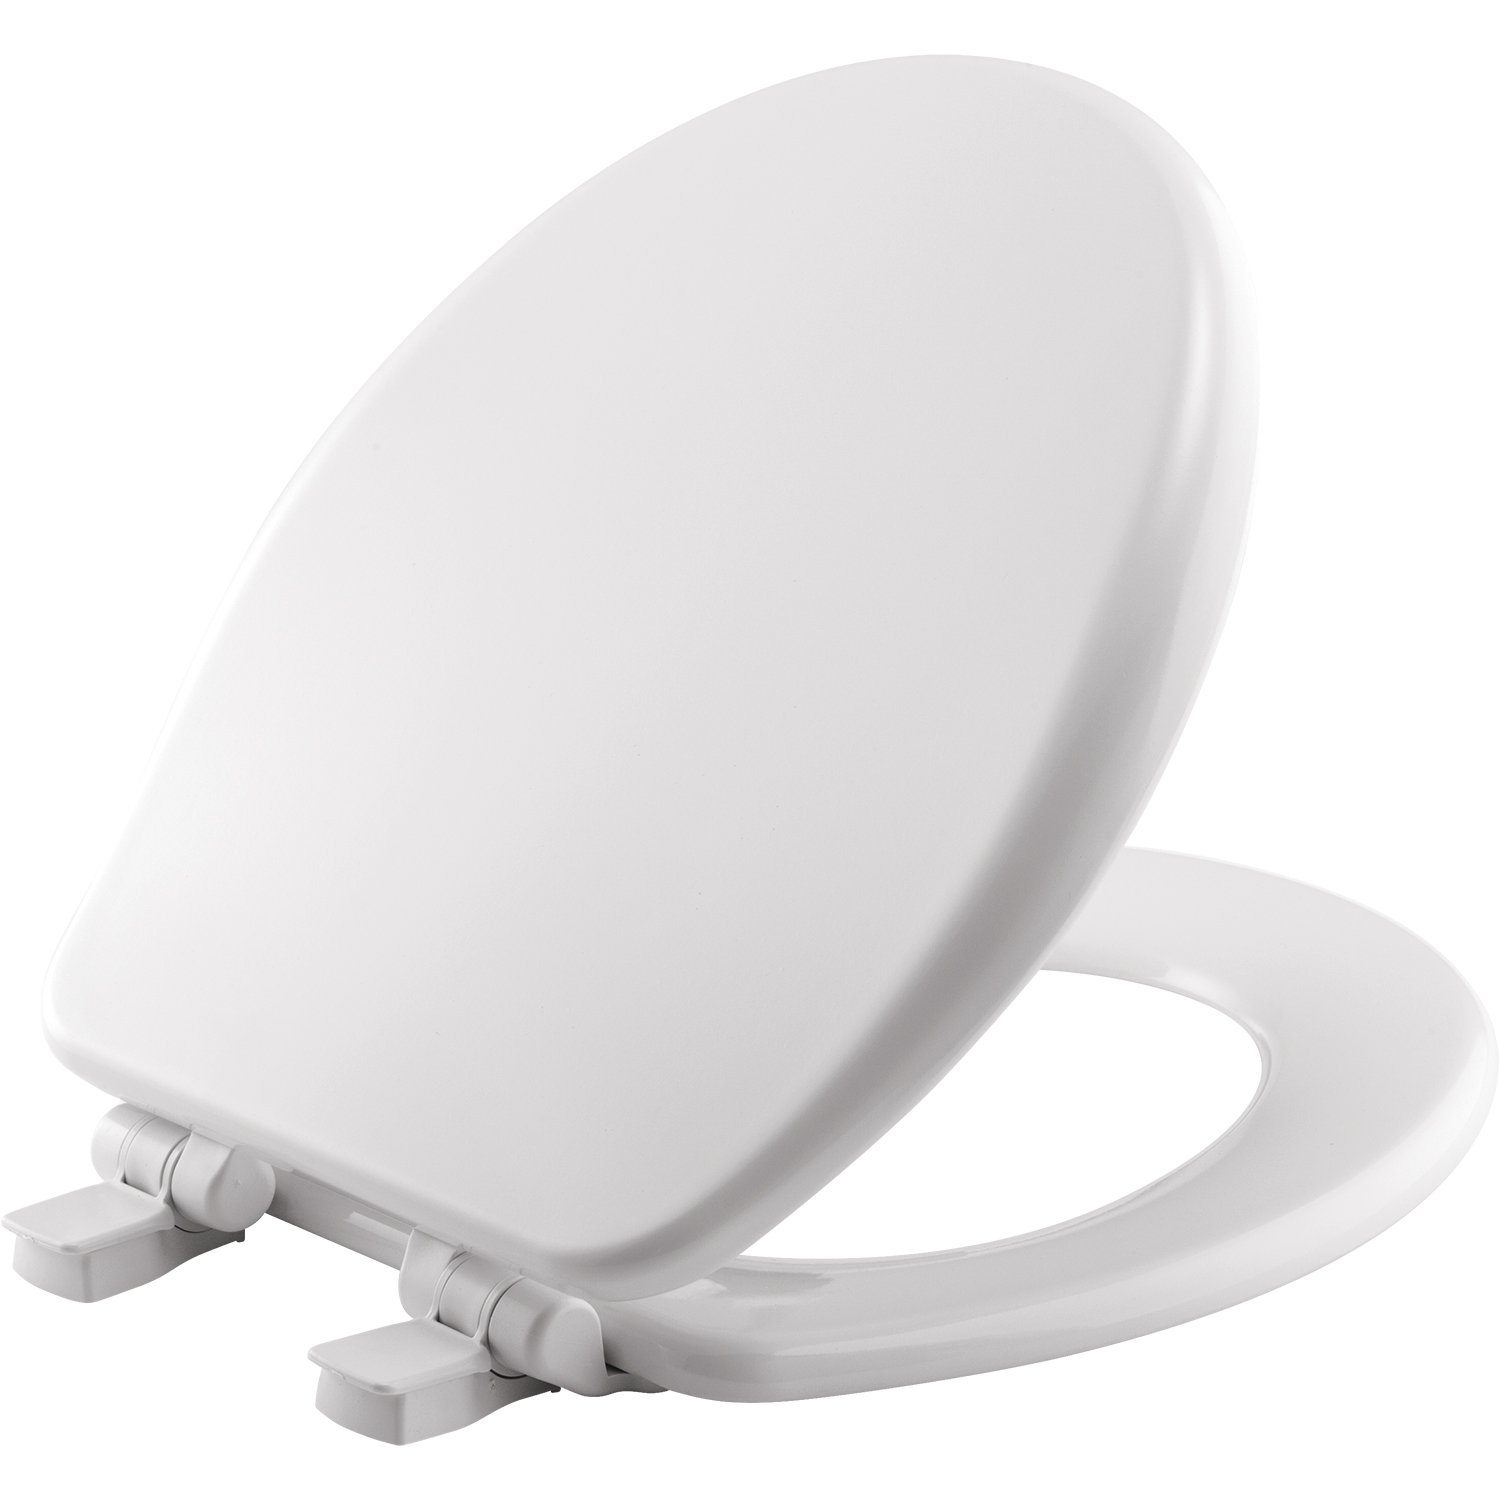 MAYFAIR Toilet Seat will Slow Close, Never Loosen and Provide the Perfect Fit, ROUND, Highly Stylized Durable Enameled Wood, White, 64SLOW